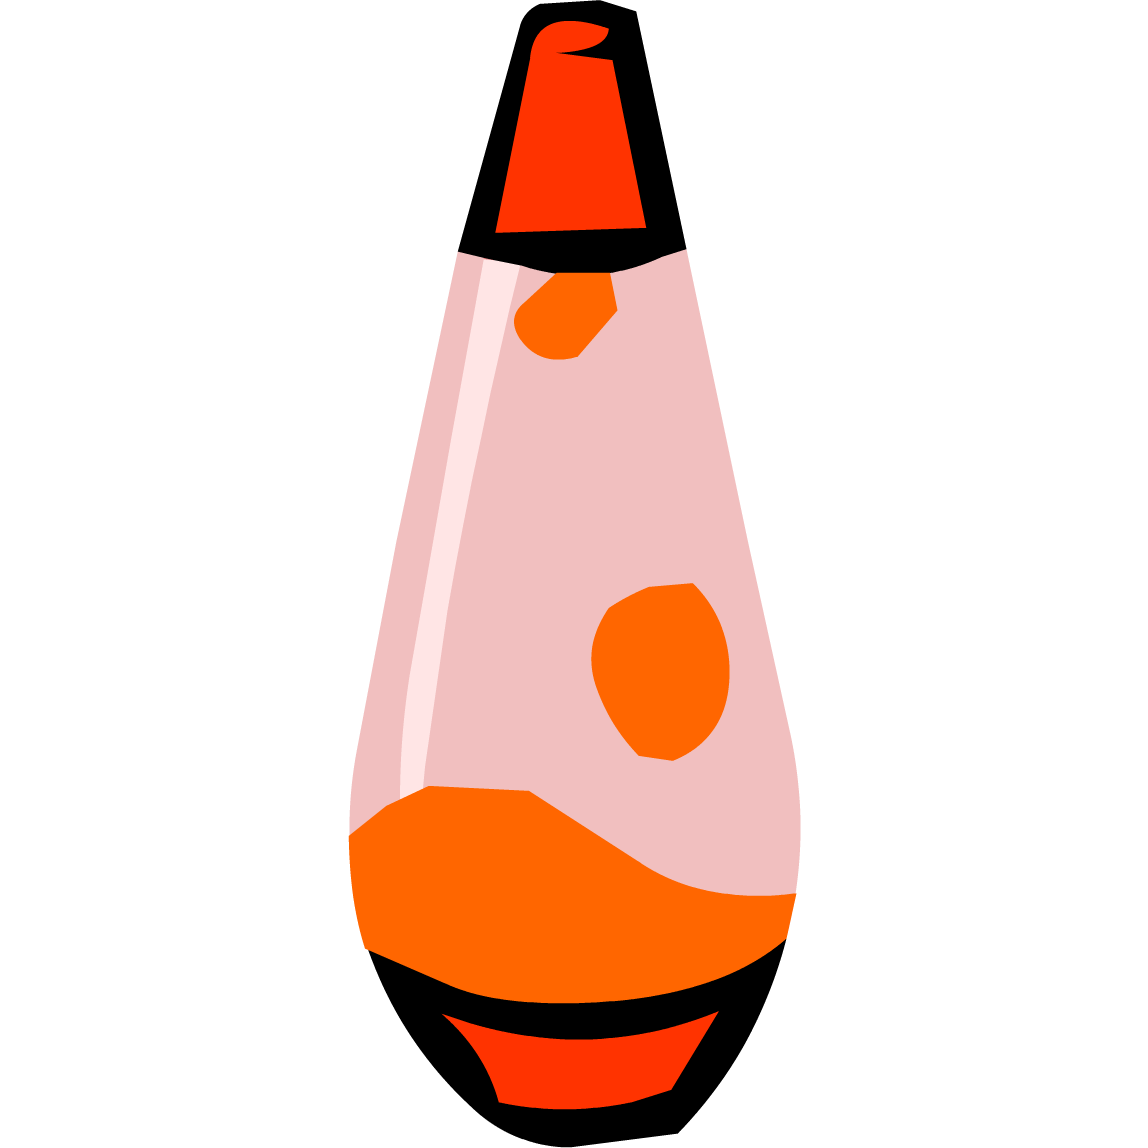 Lava lamp png - Red Lava Lamp Png